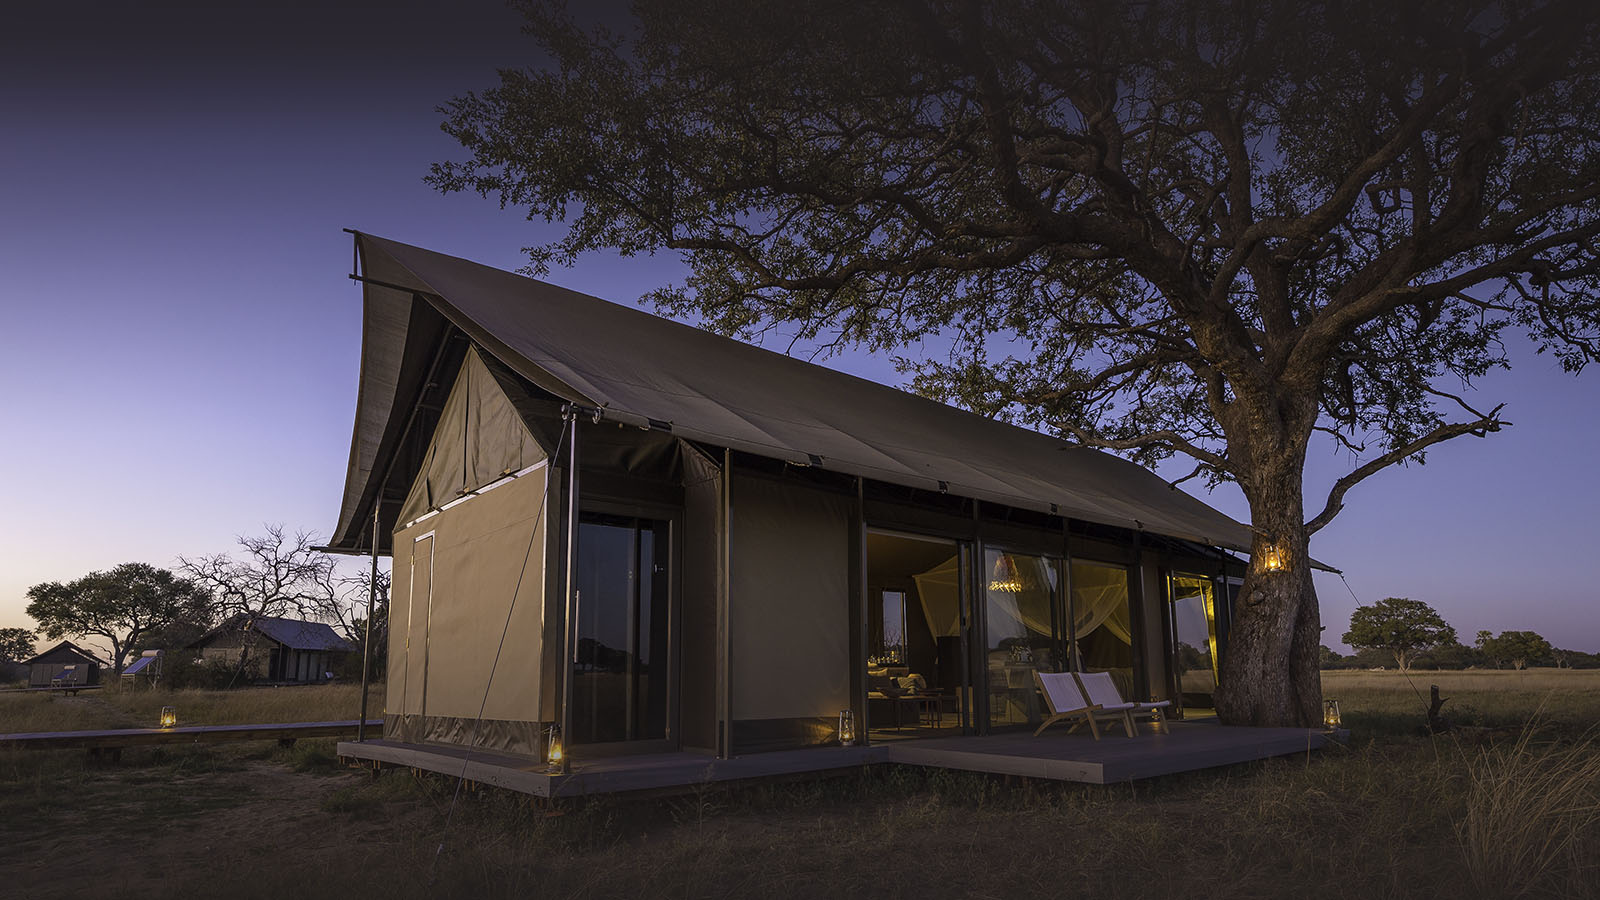 linkwasha camp hwange-national-park-zimbabwe-lodges-luxury-wilderness-camp-evening